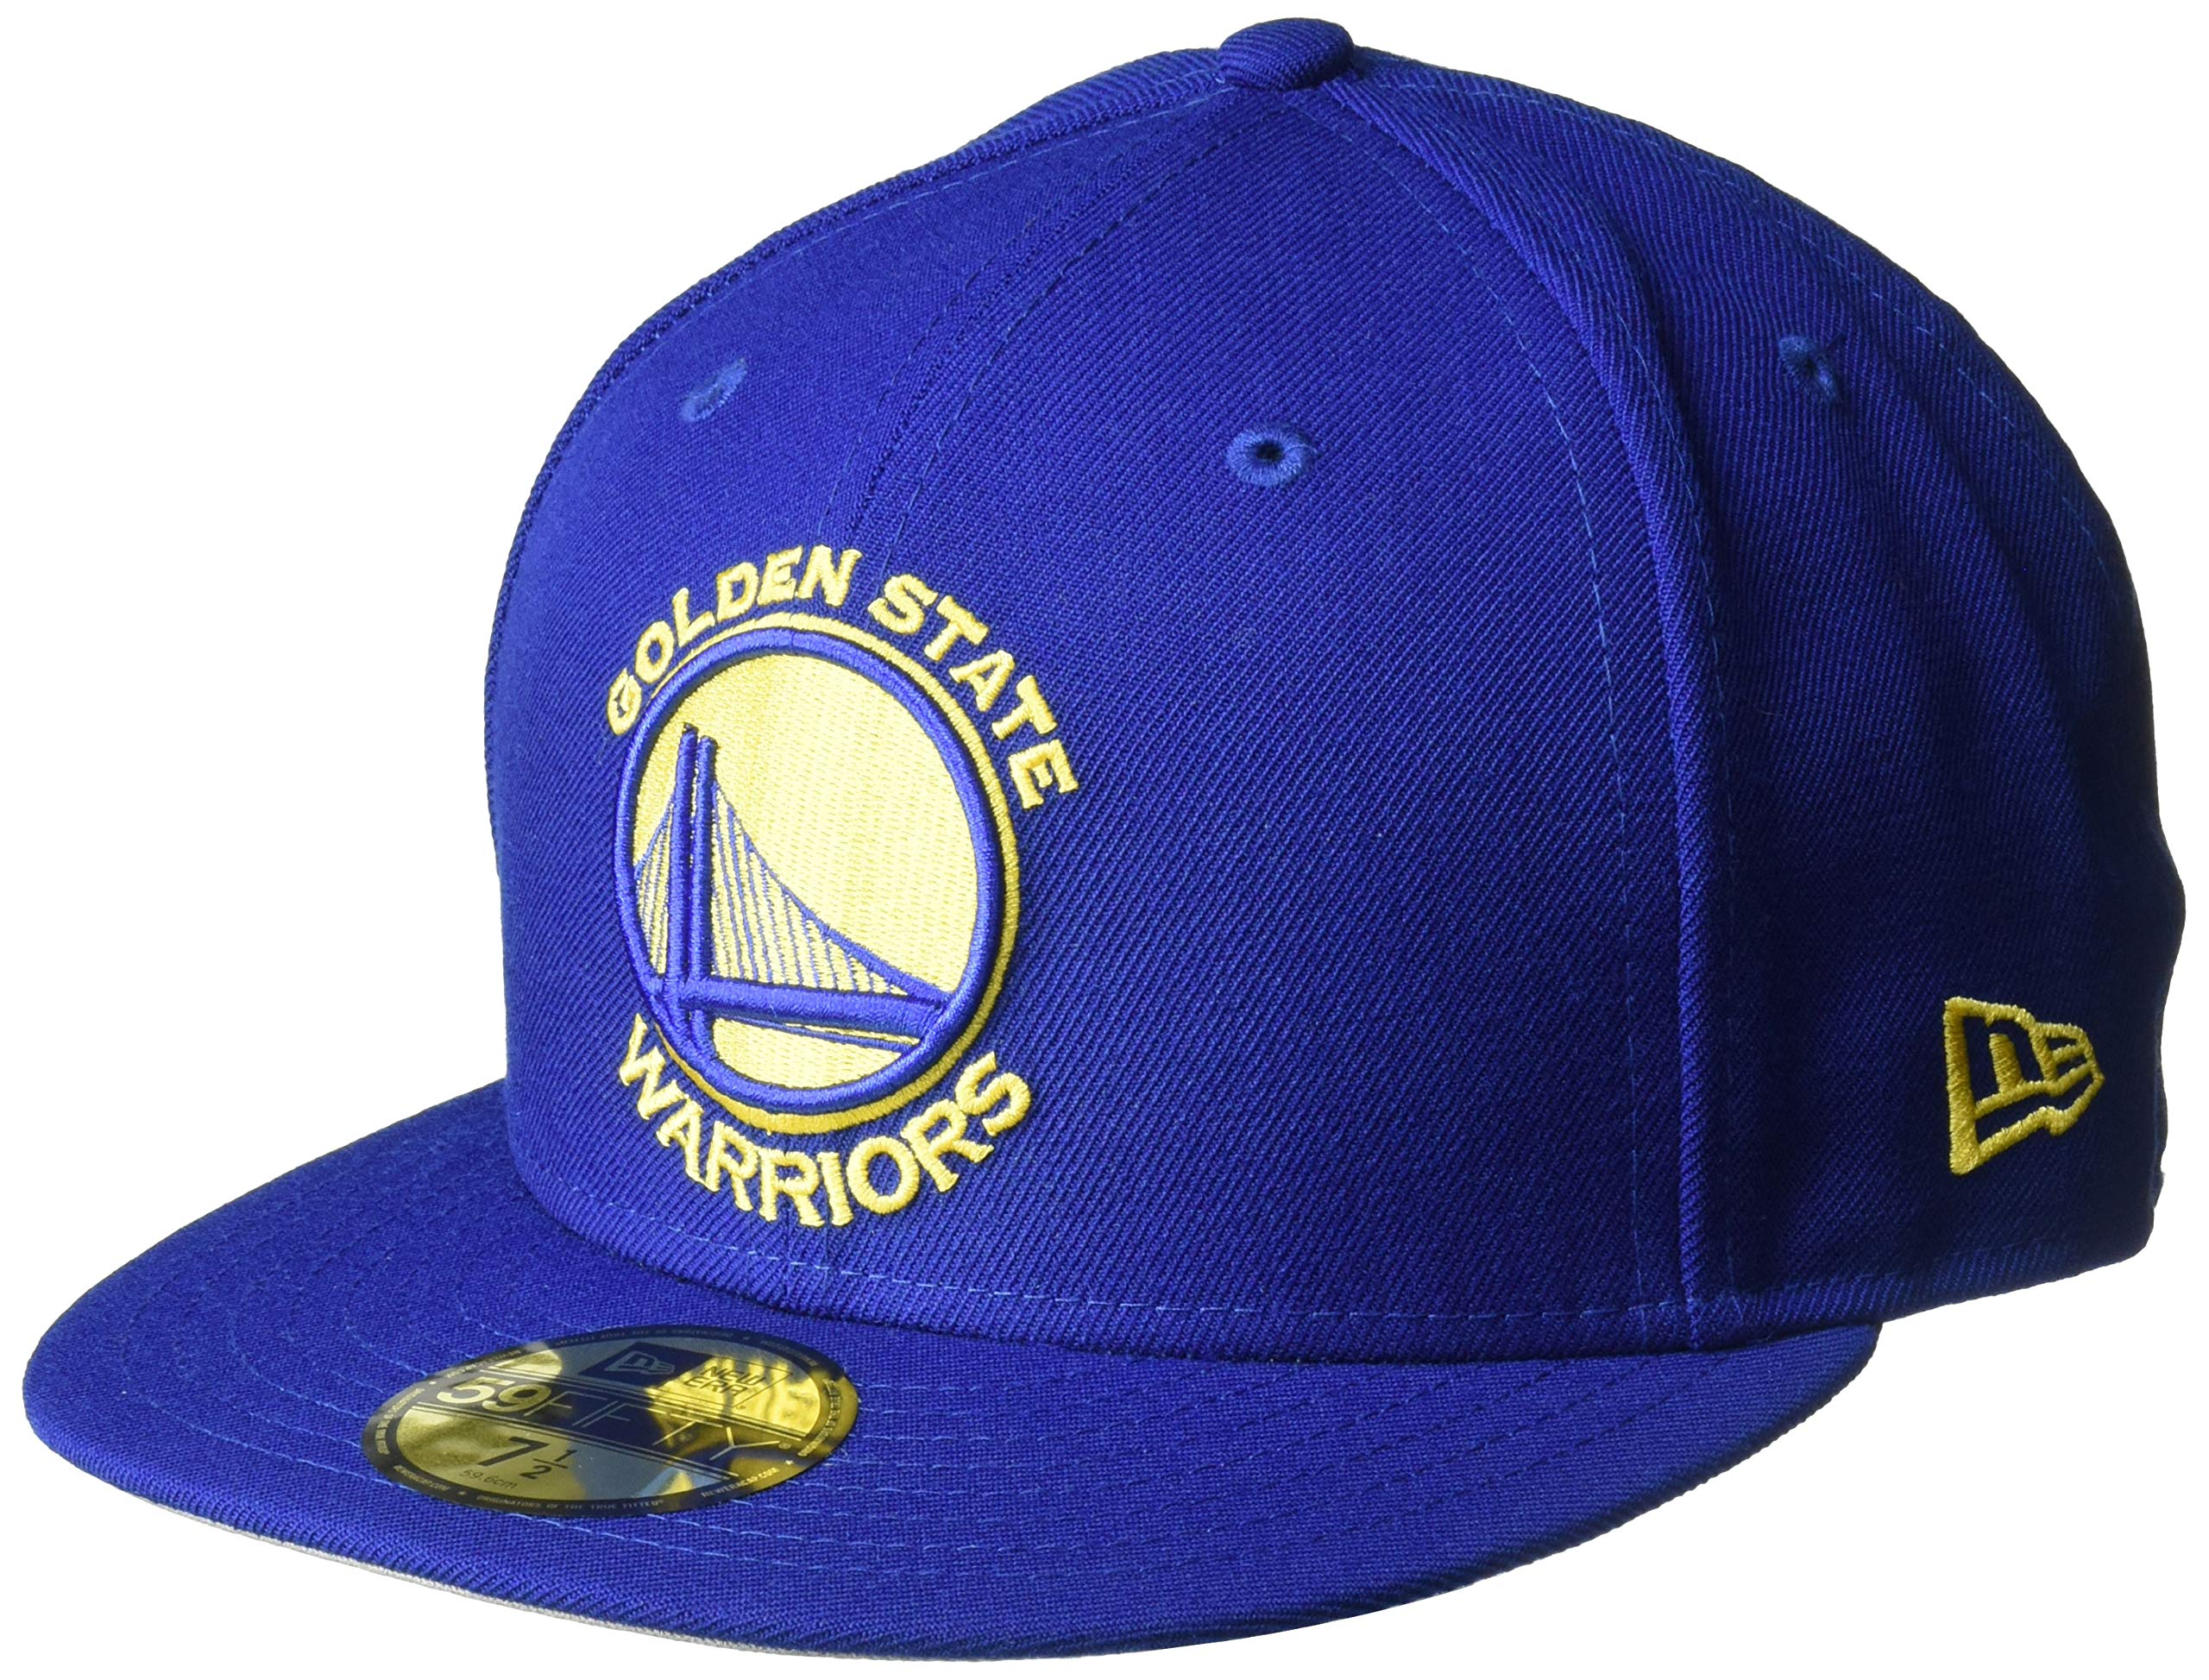 size 40 f46dd 757c0 Galleon - New Era NBA Golden State Warriors Classic Wool Fitted 59FIFTY Cap,  7.25, Royal